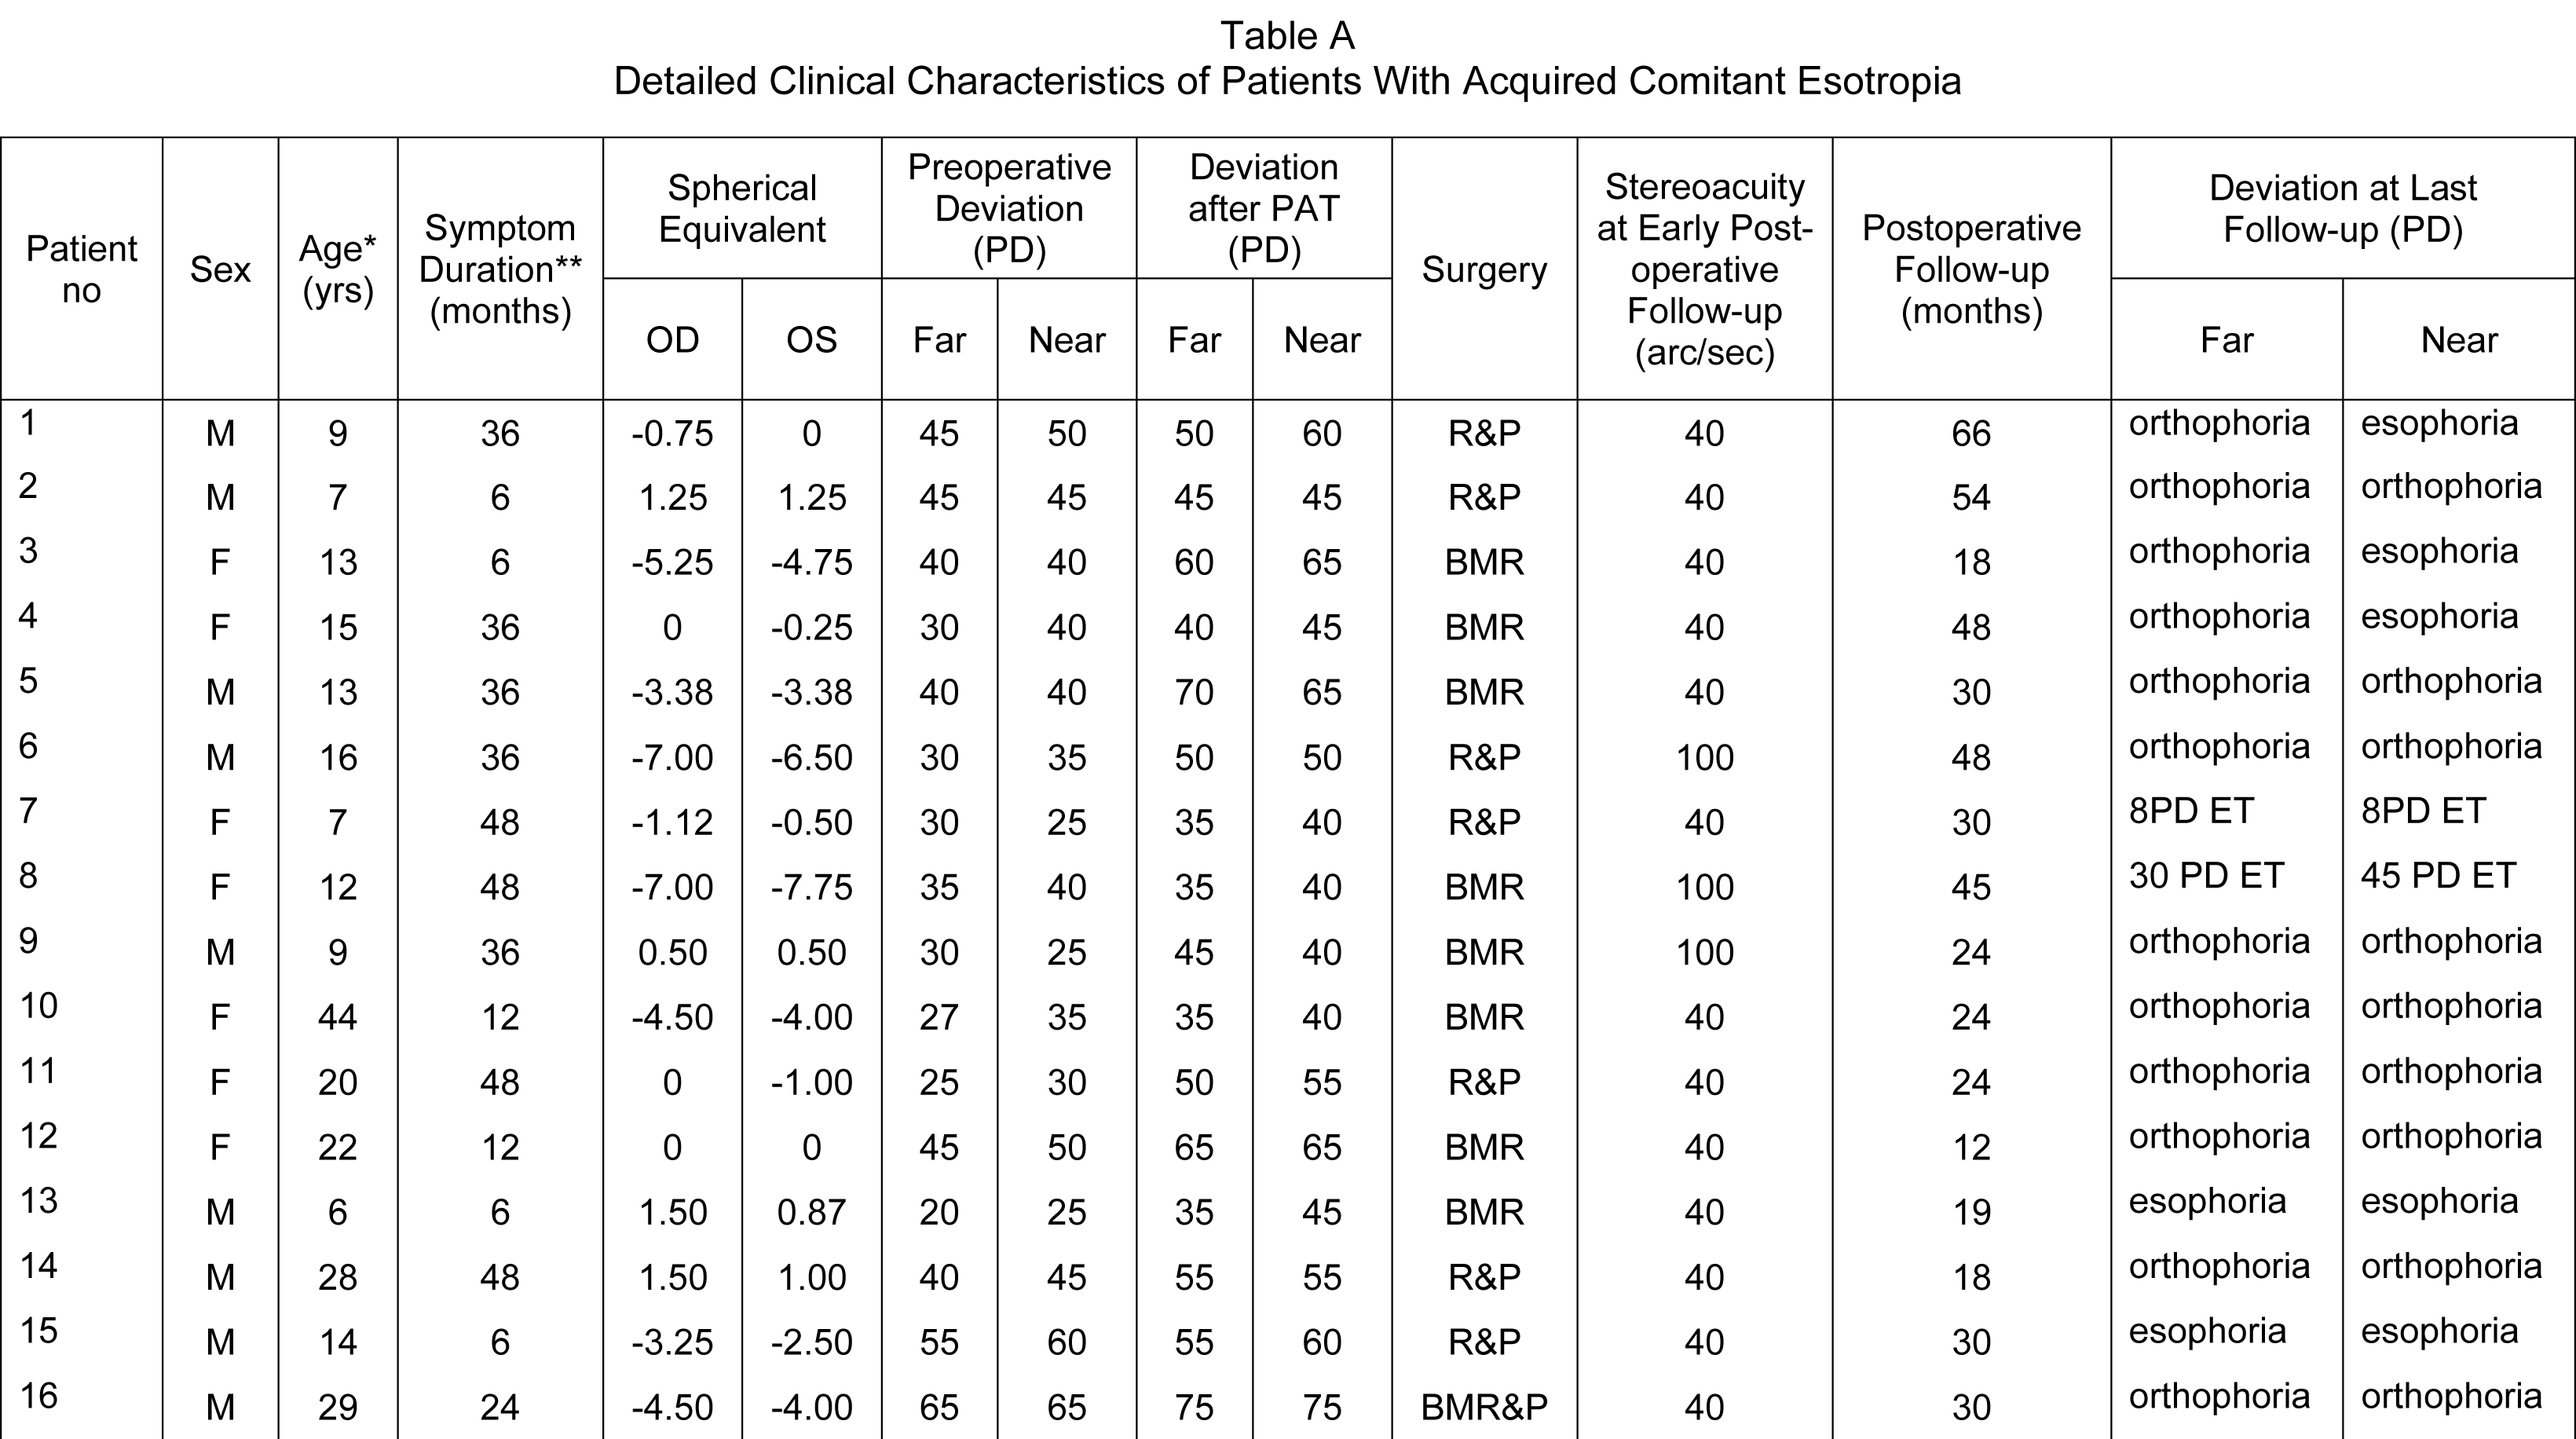 Detailed Clinical Characteristics of Patients With Acquired Comitant Esotropia